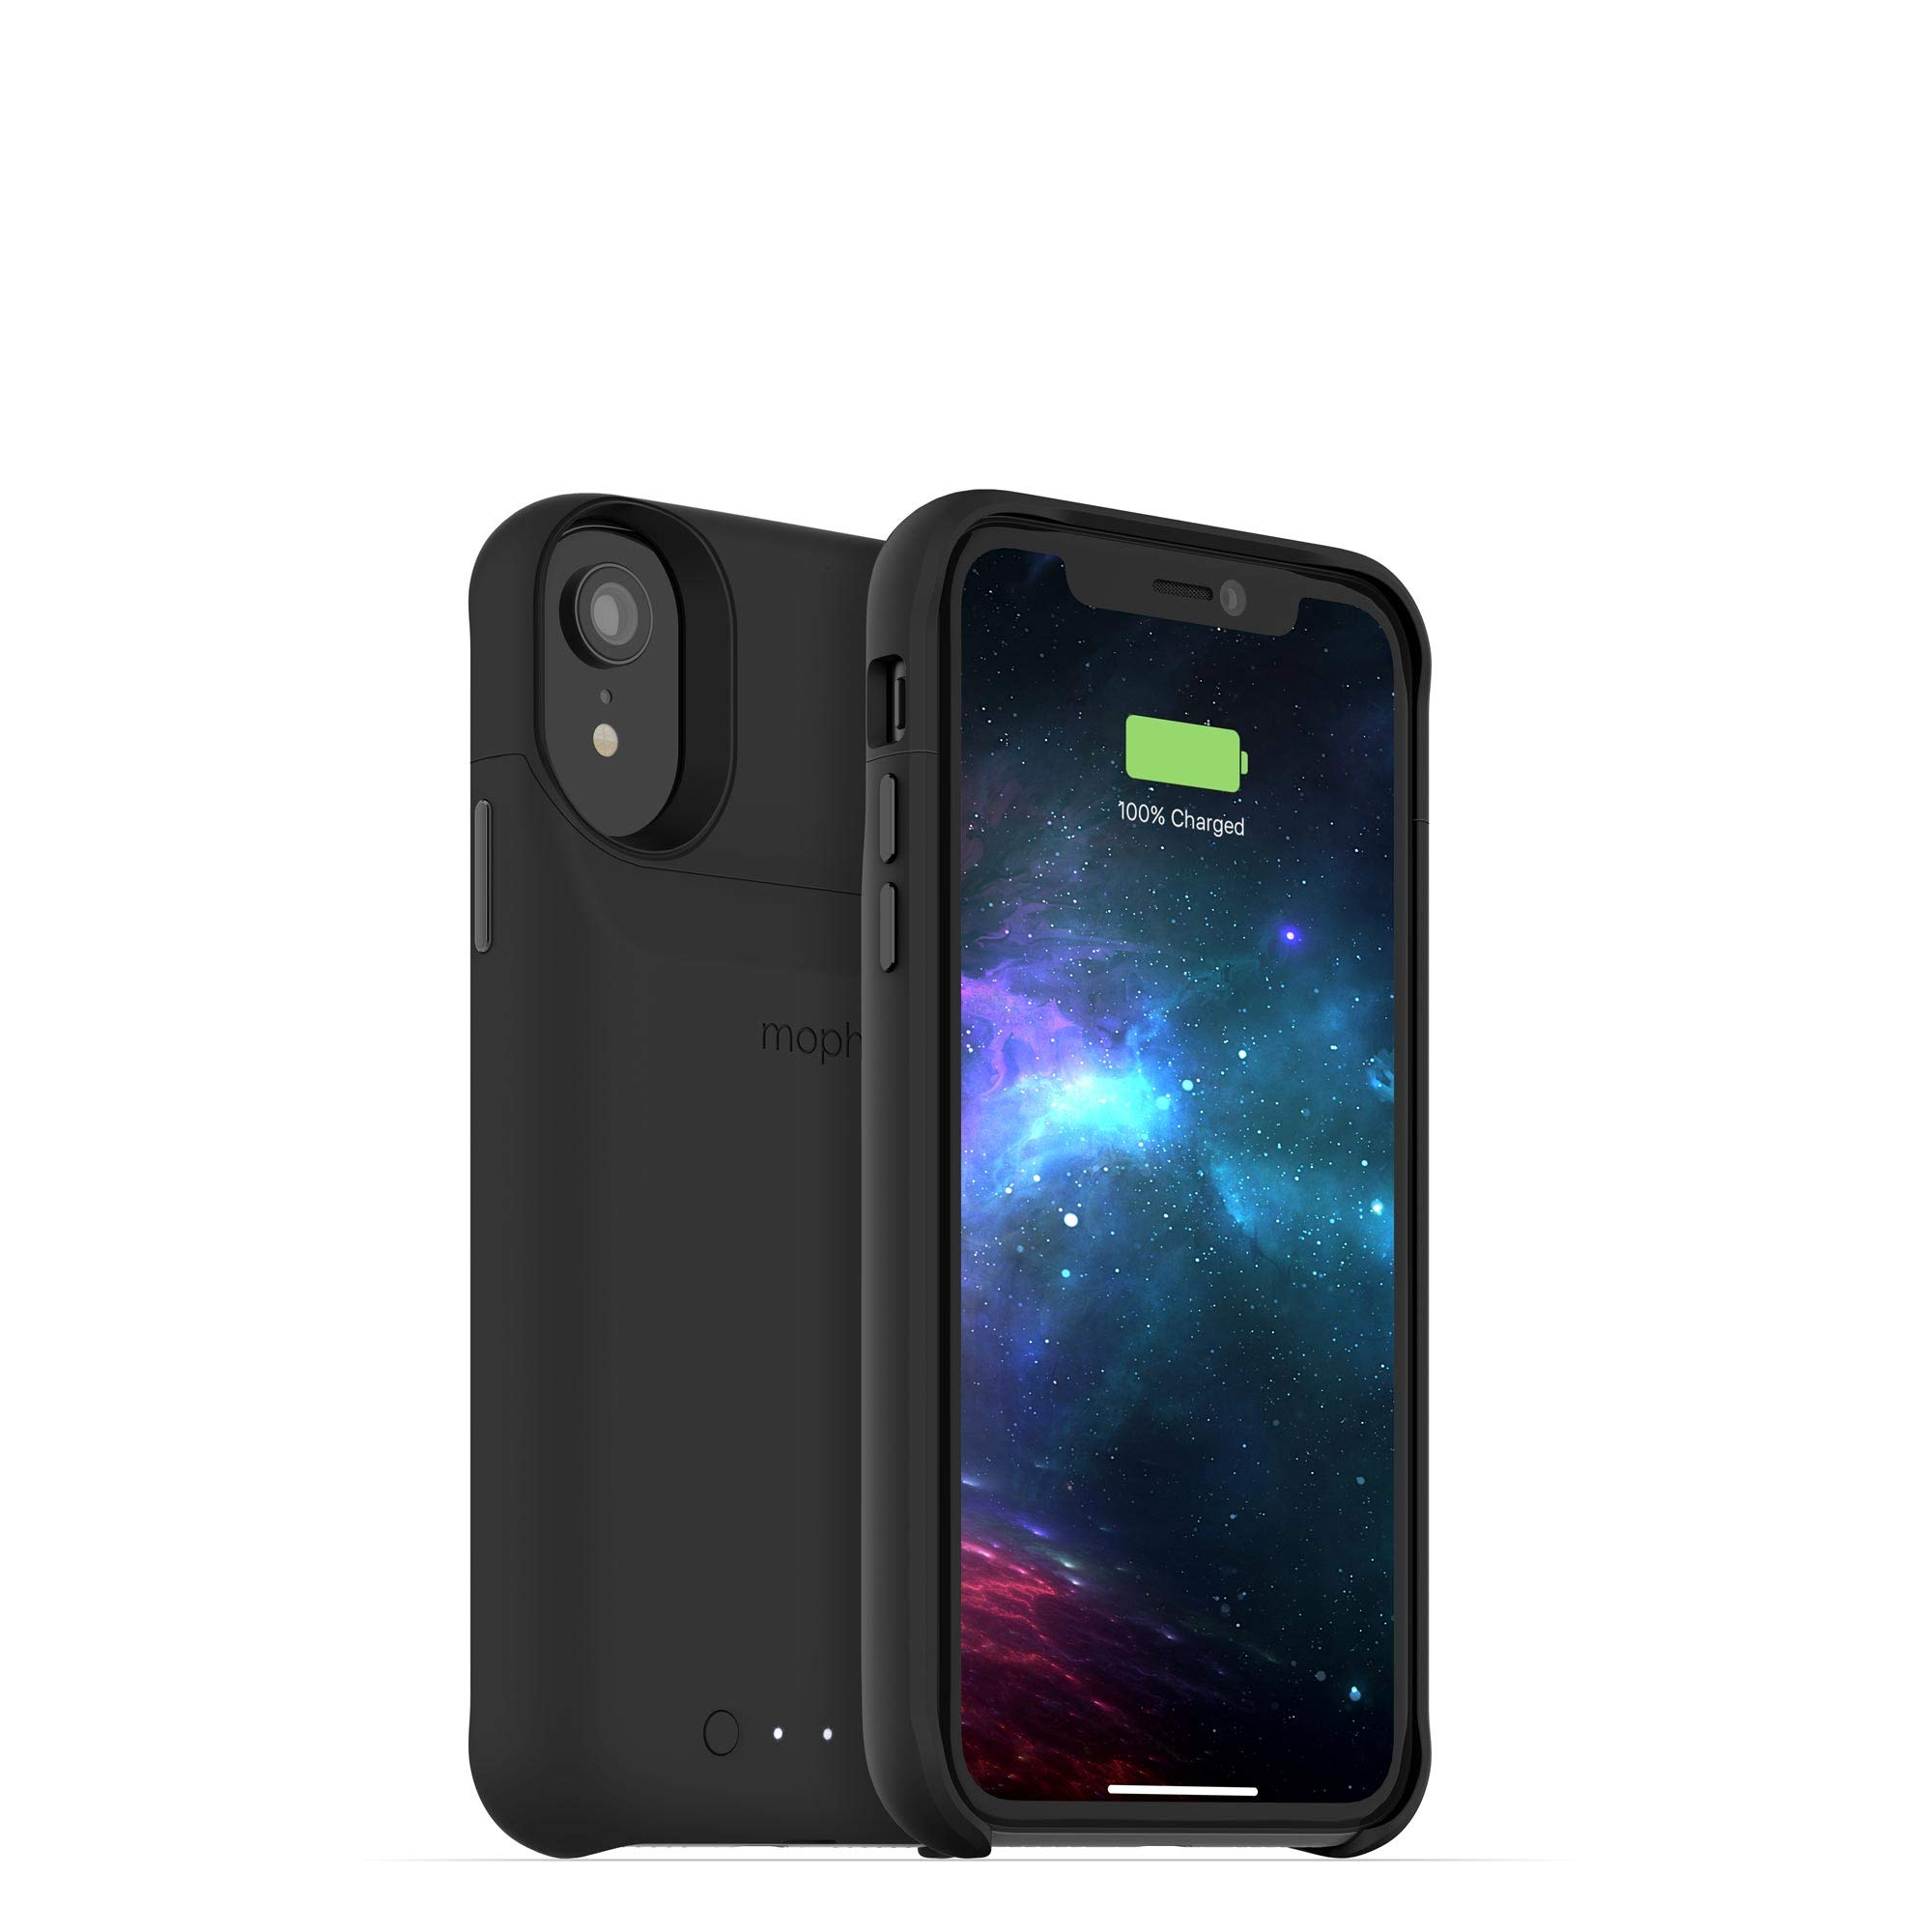 mophie Juice Pack Access - Ultra-Slim Wireless Battery Case - Made for Apple iPhone XR (2,000mAh) - Black by mophie